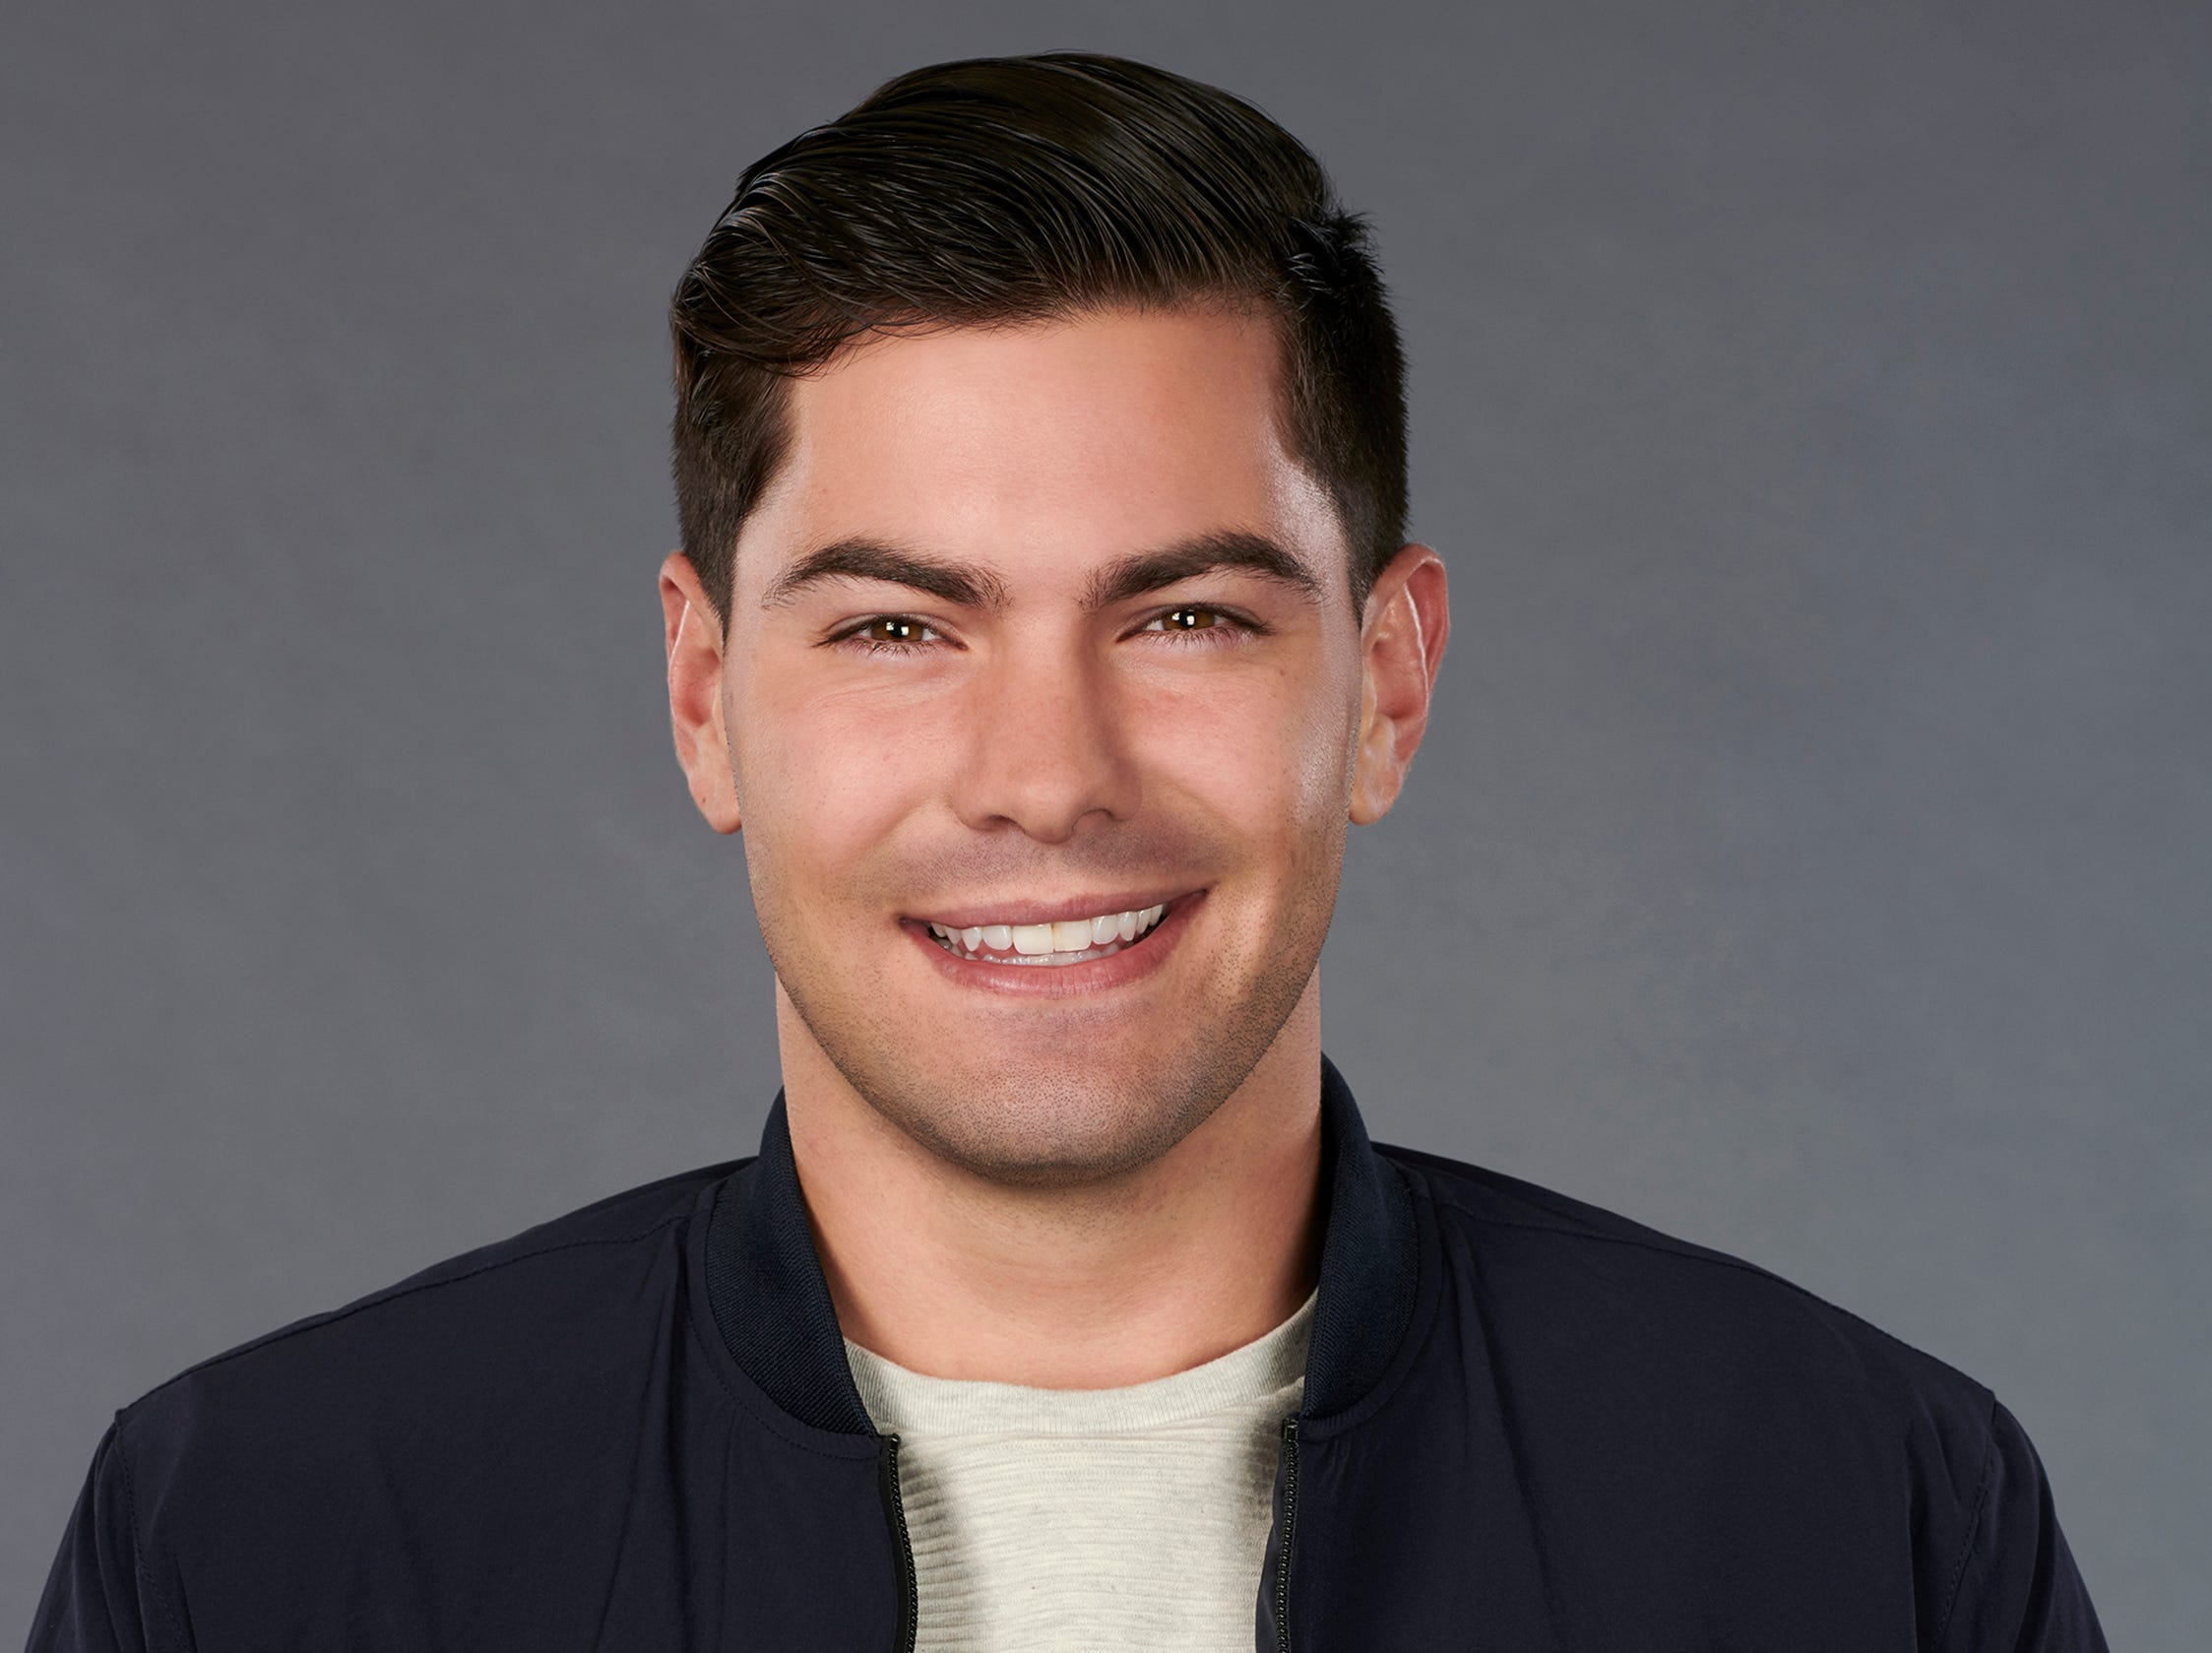 """The Bachelorette"" Season 23 contestant:  Dylan, 24, San Diego, tech entrepreneur"